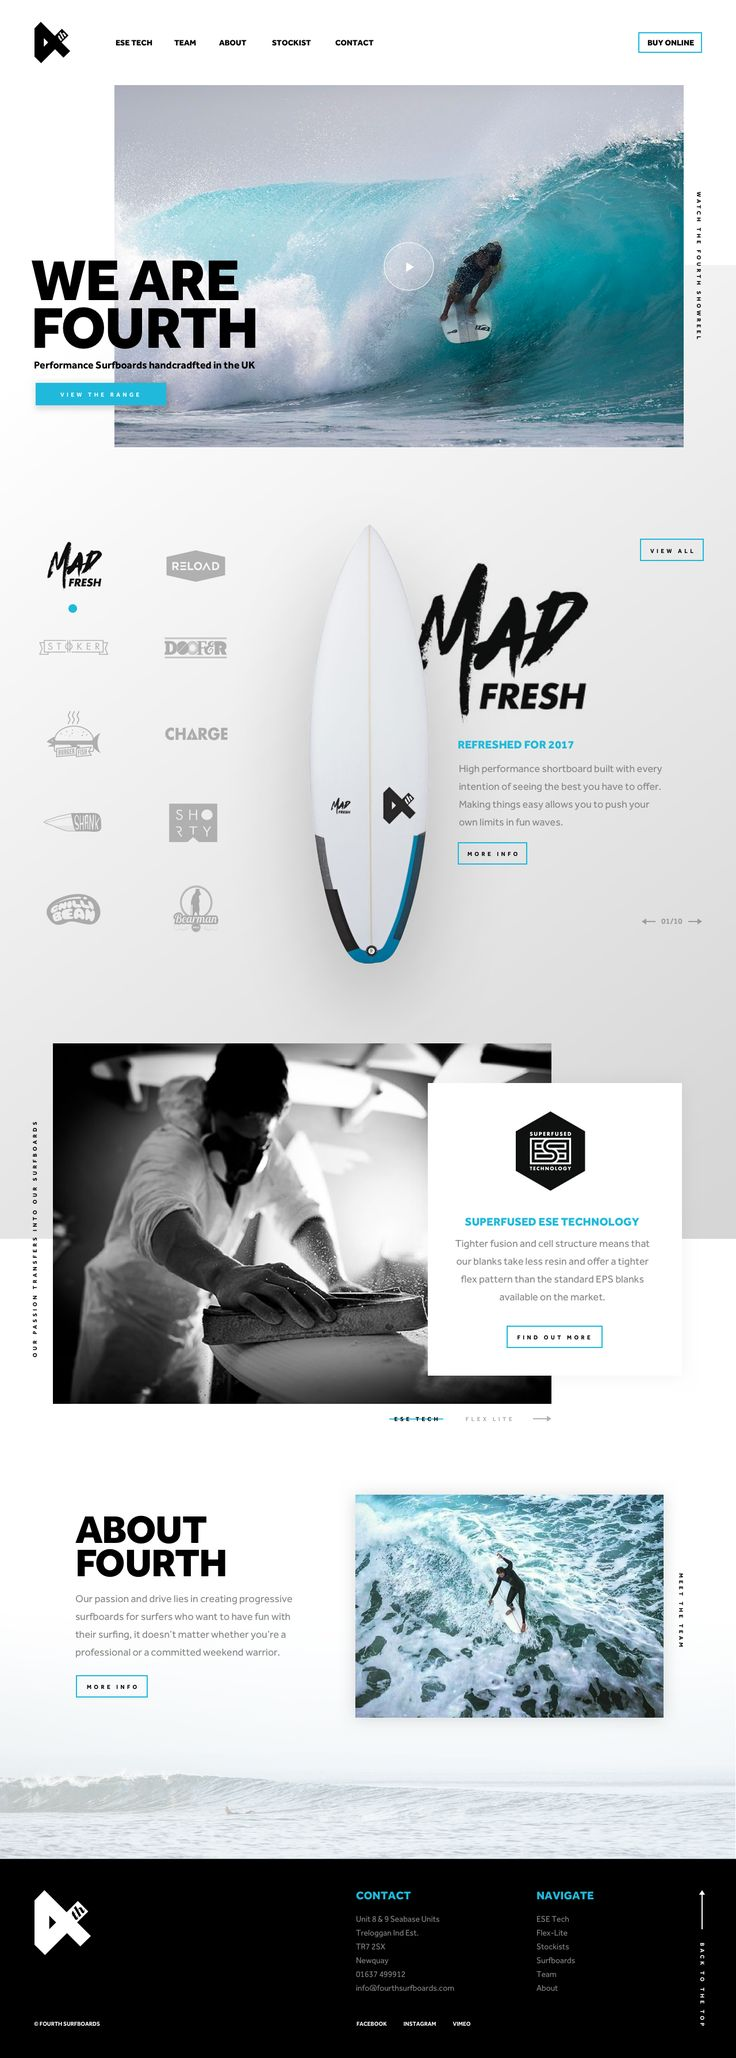 Fourth Surf Boards Concept by Tristan Stubbings @ dribbble.com